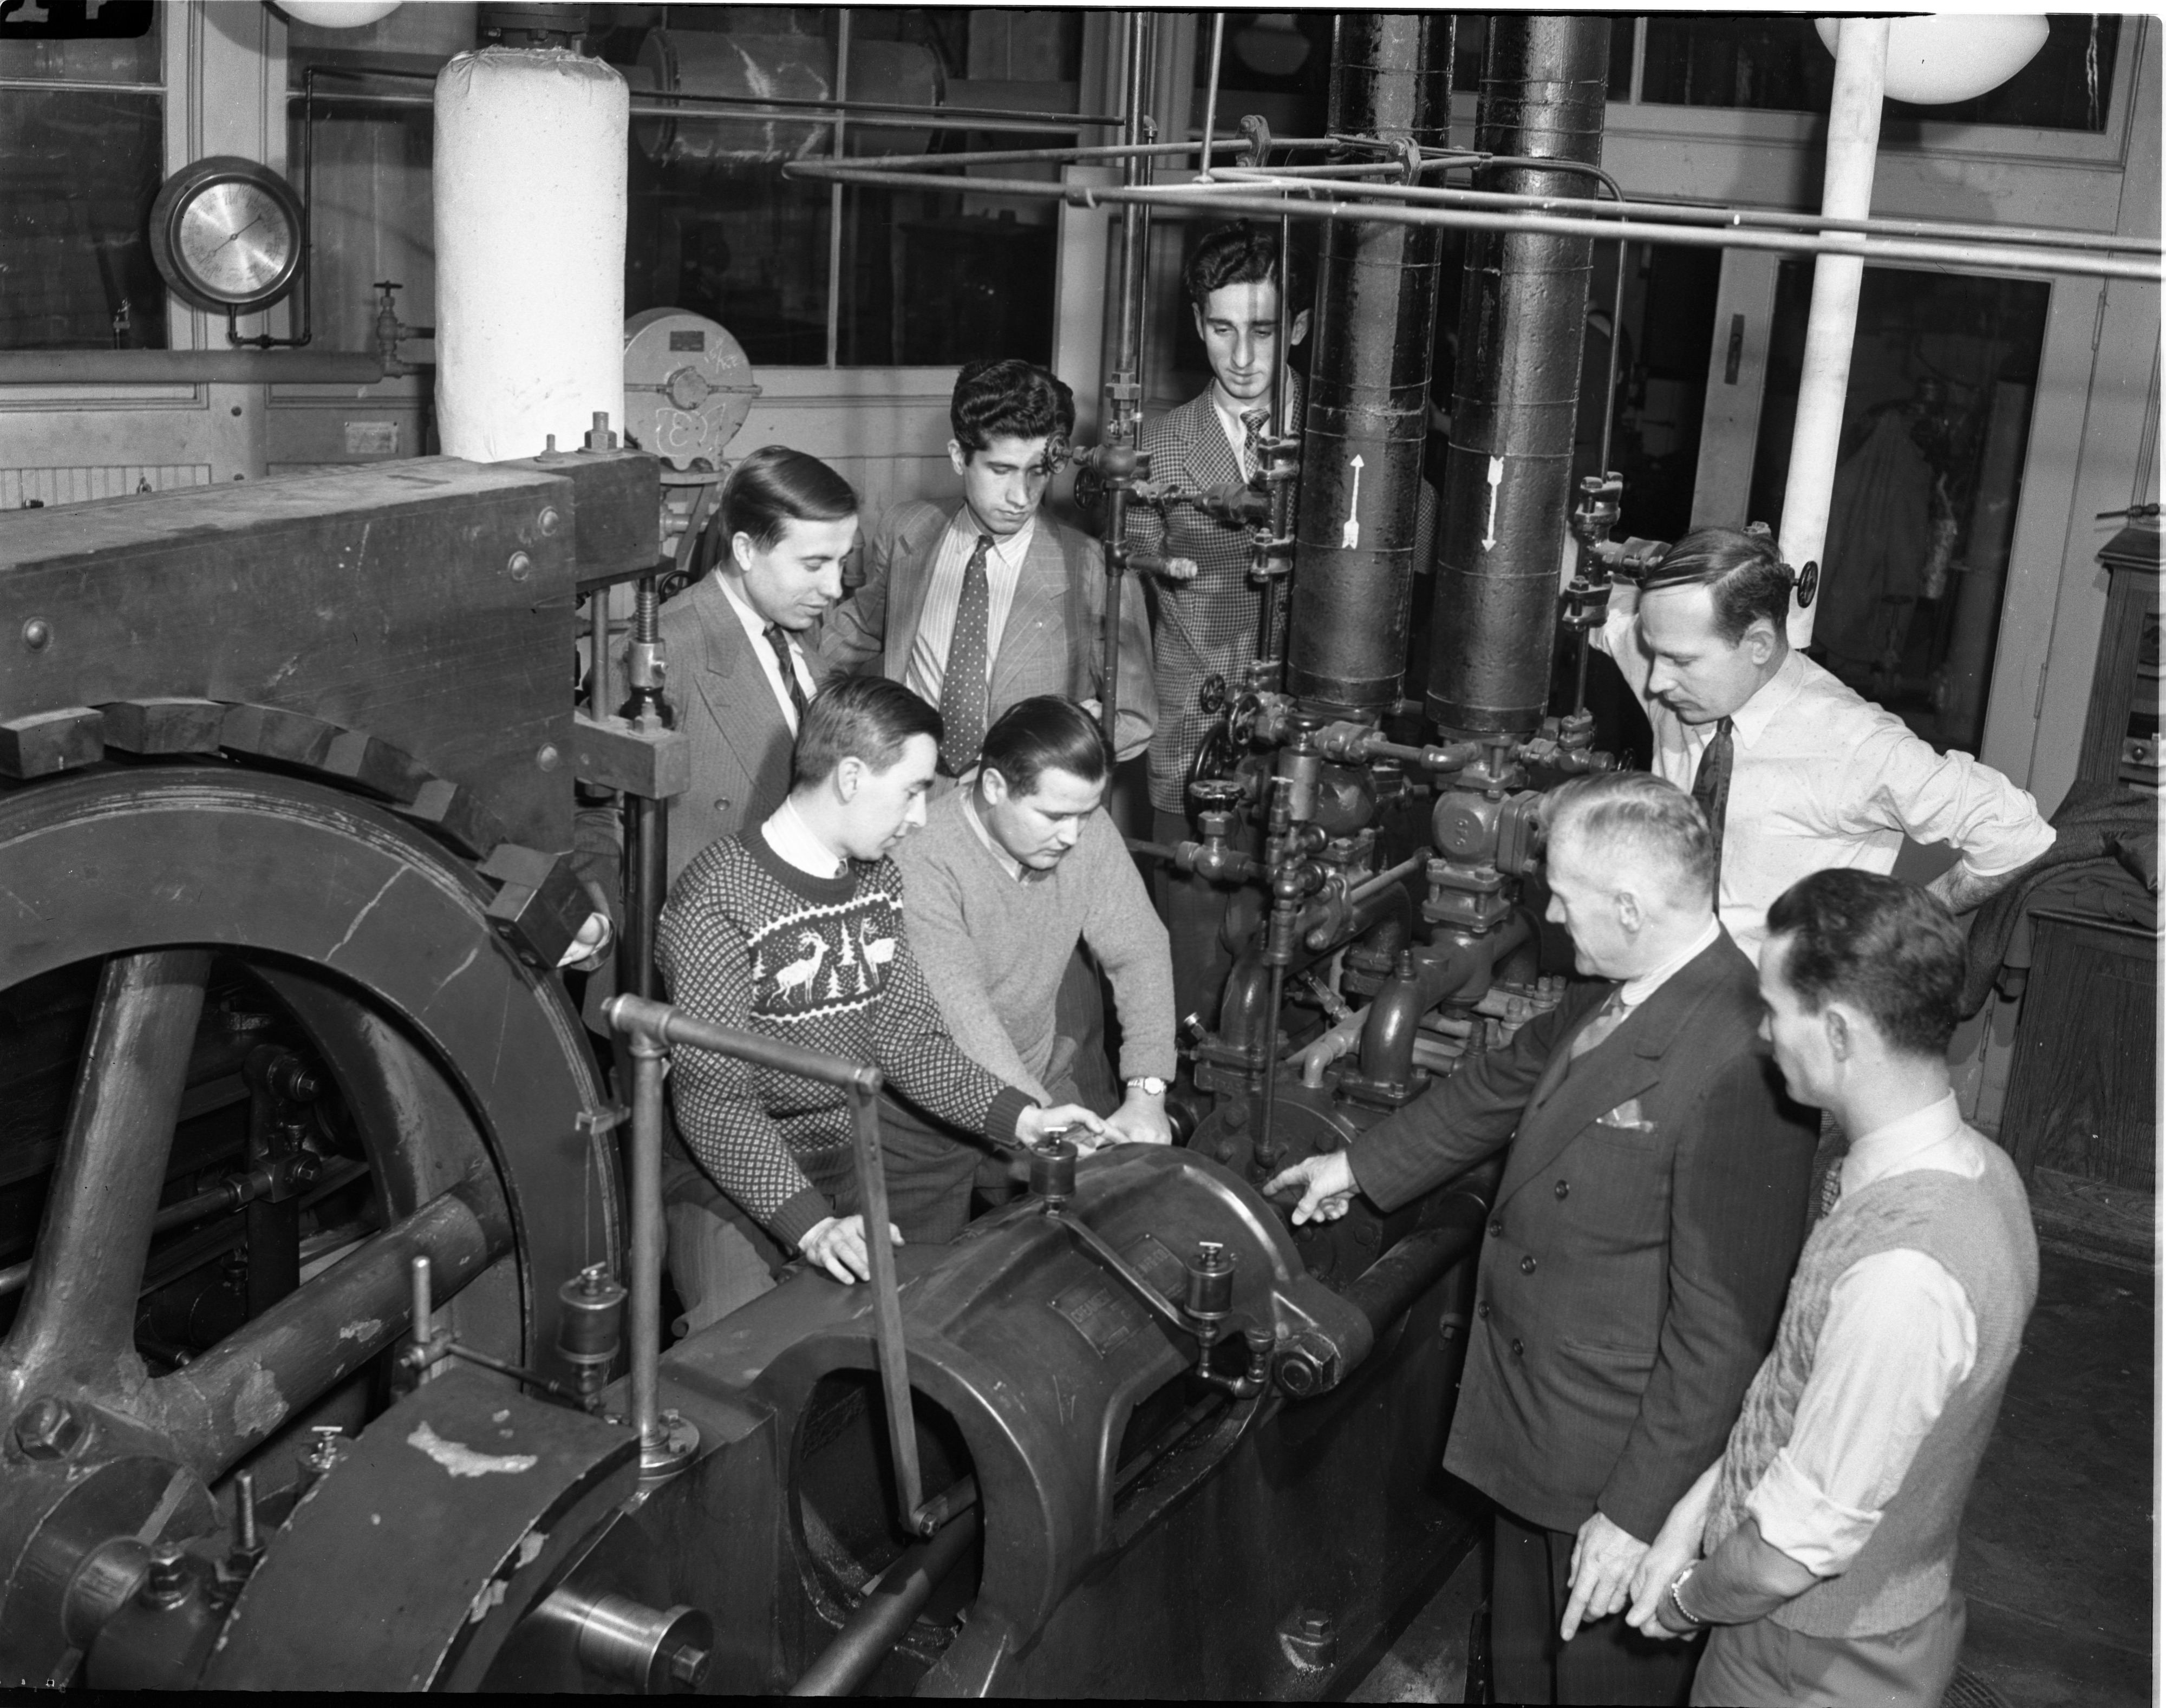 UM Students From Turkey In Engineering Class, December 1943 image